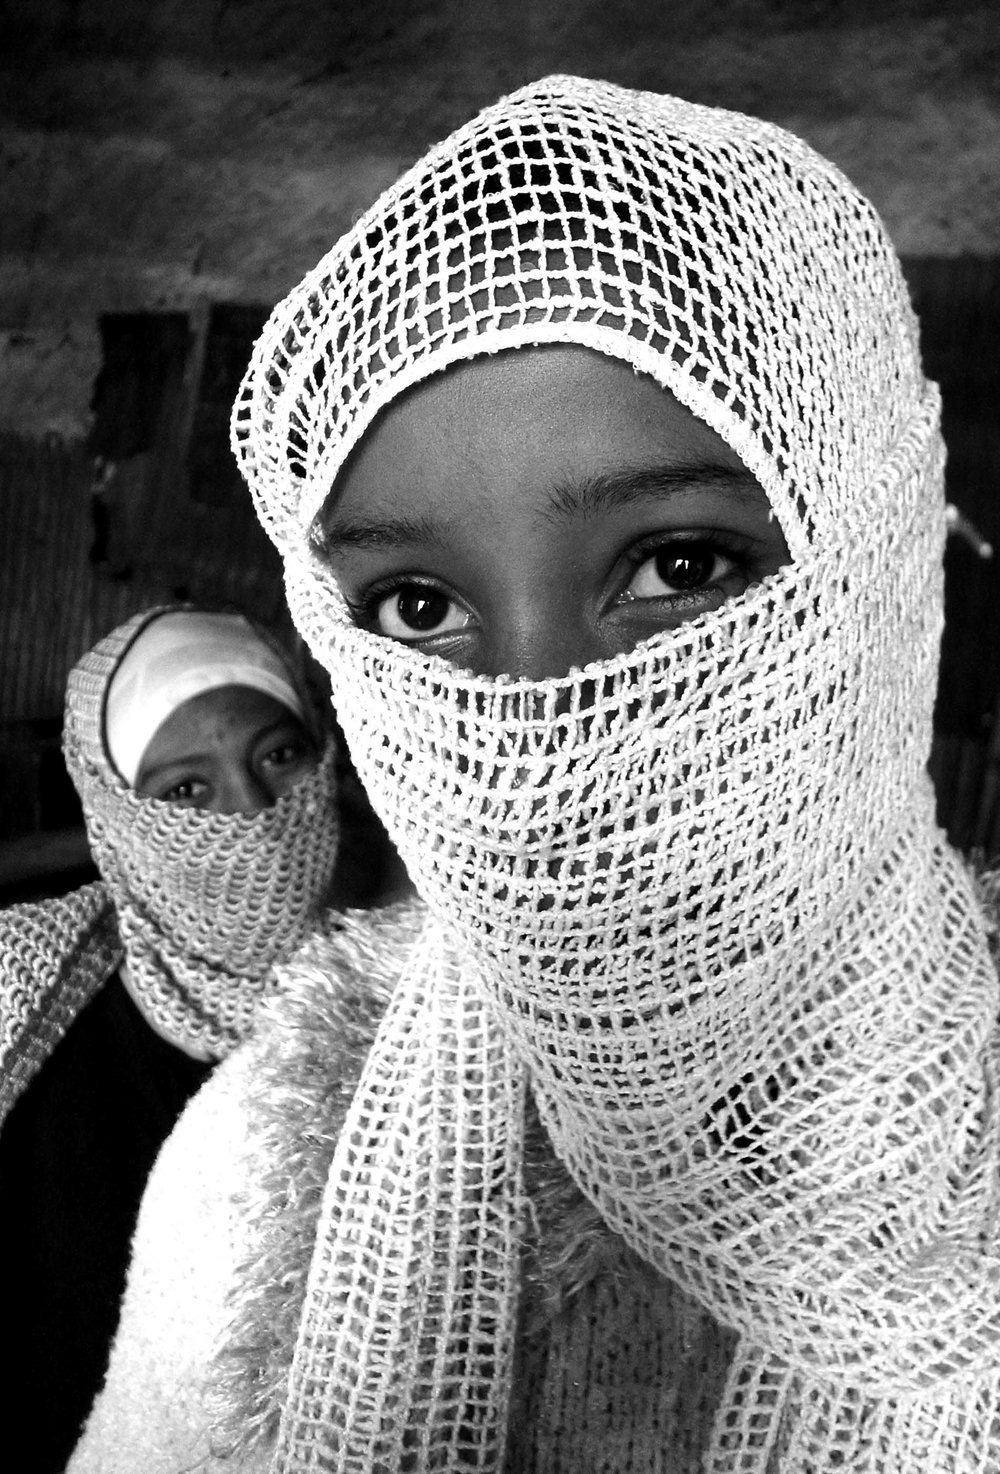 """Shy girls in Quran school"" Islam in Ethiopia series - Dese, Welo, Ethiopia"